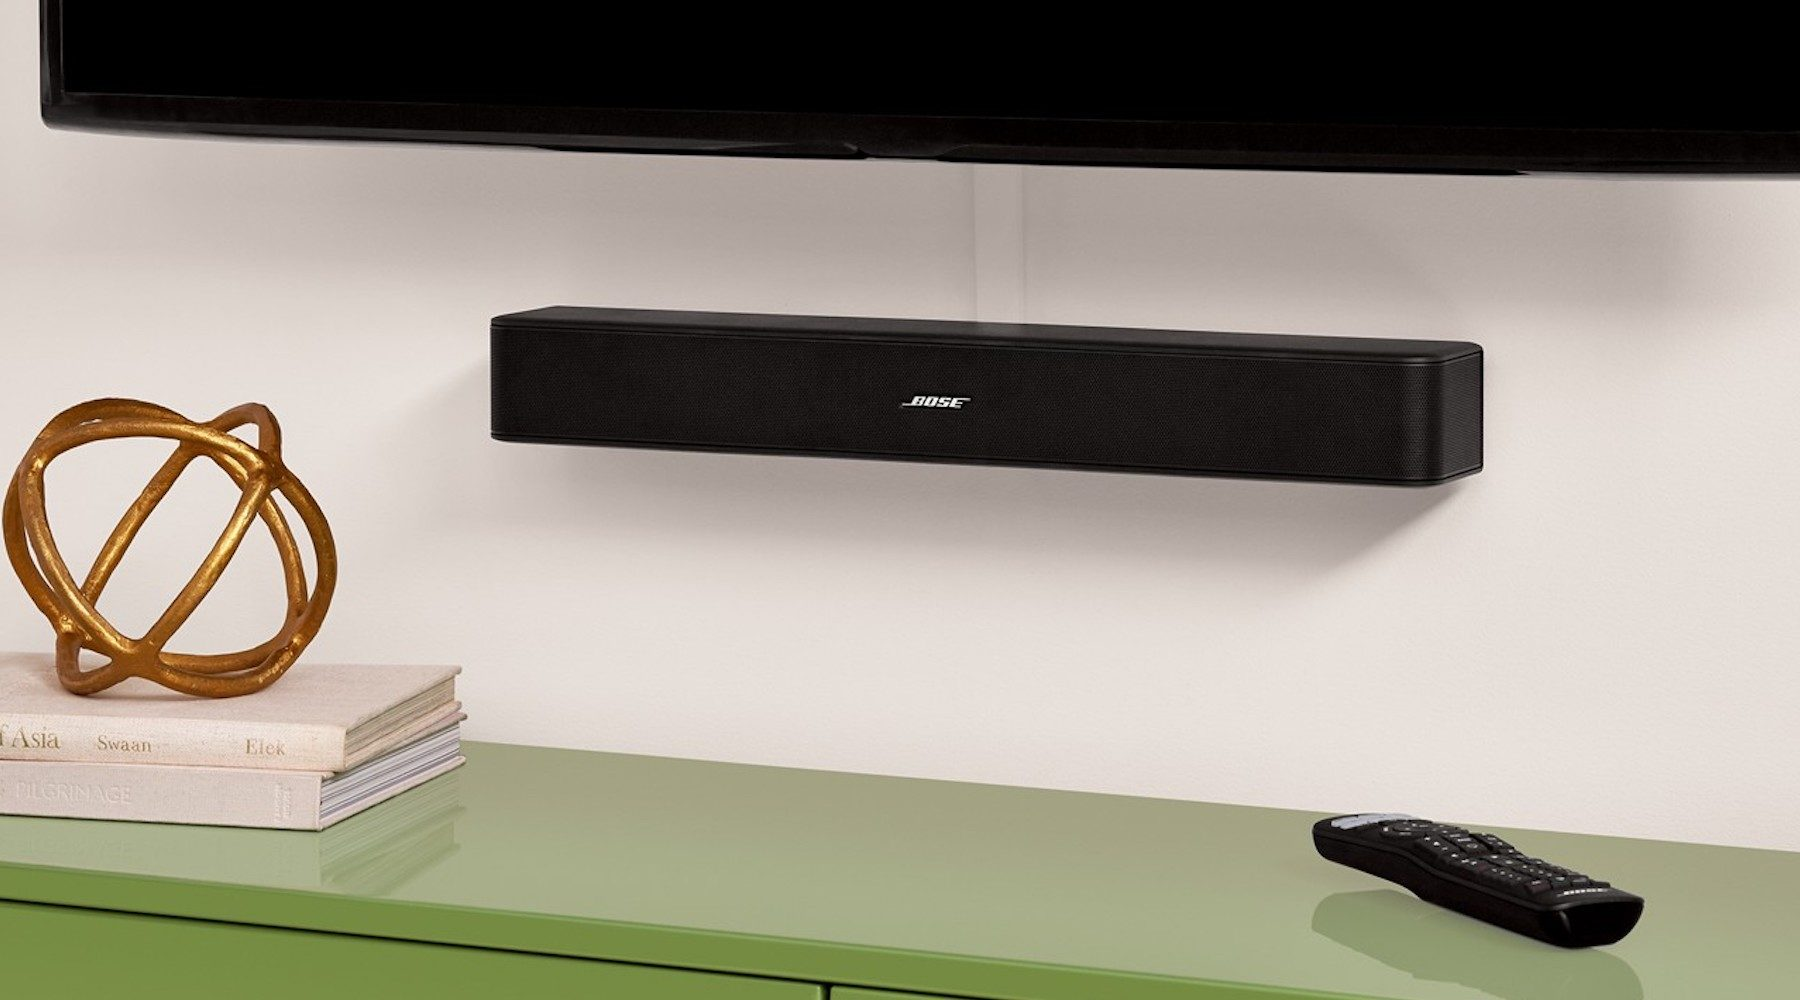 Bose Black Friday Deal: Get 27% off the Bose Solo 5 soundbar at Amazon